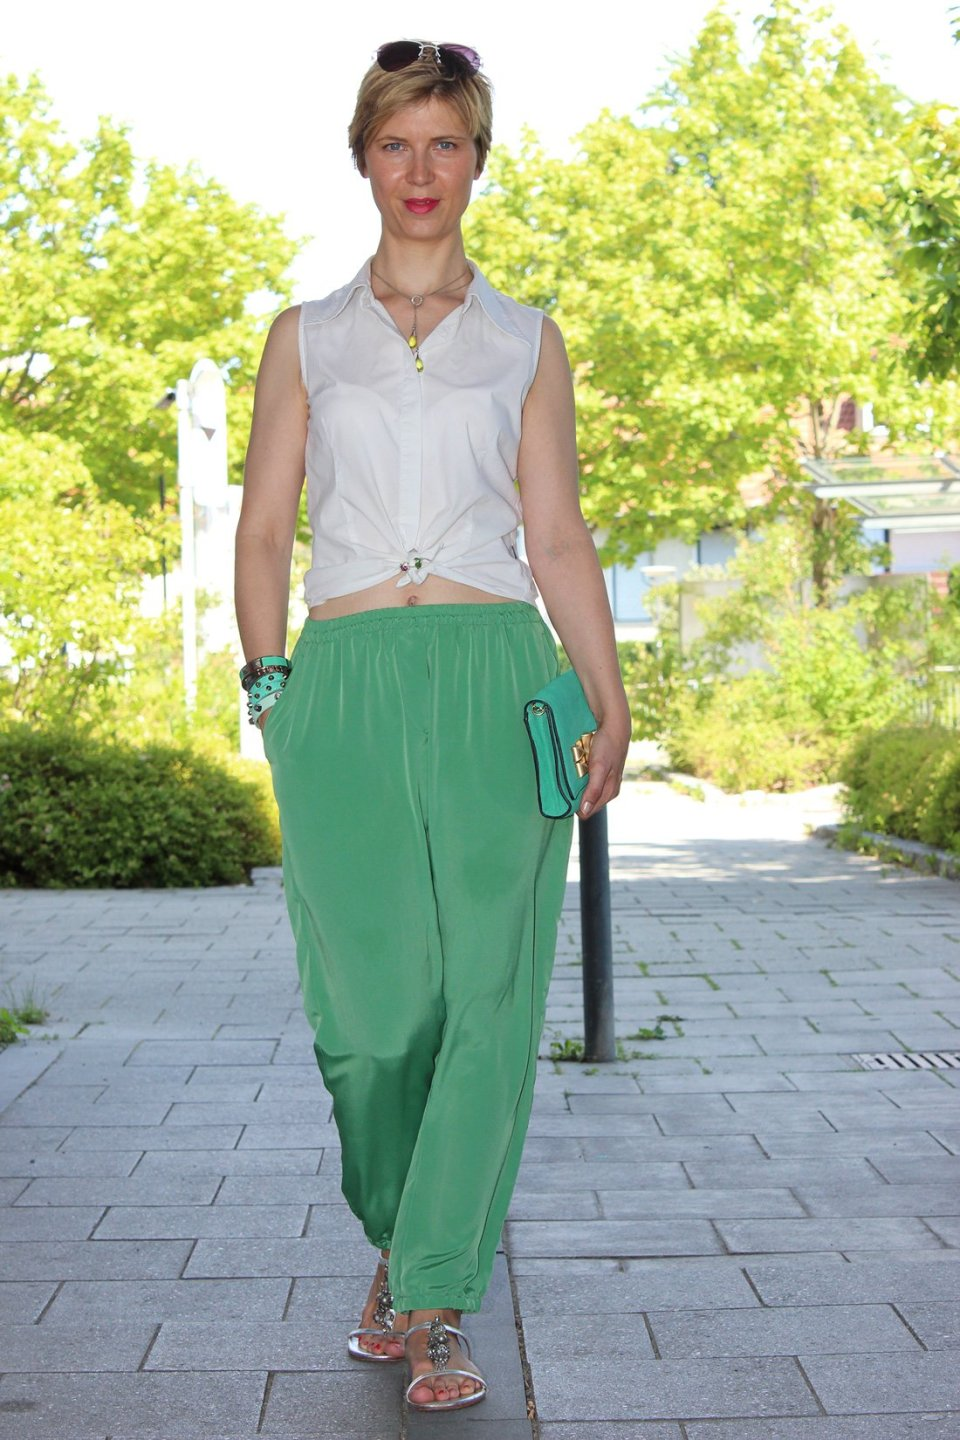 IMG_9334a_Seidenhose_Rosalia_casualSommerOutfit_weißeBluse_Sandals_Boden